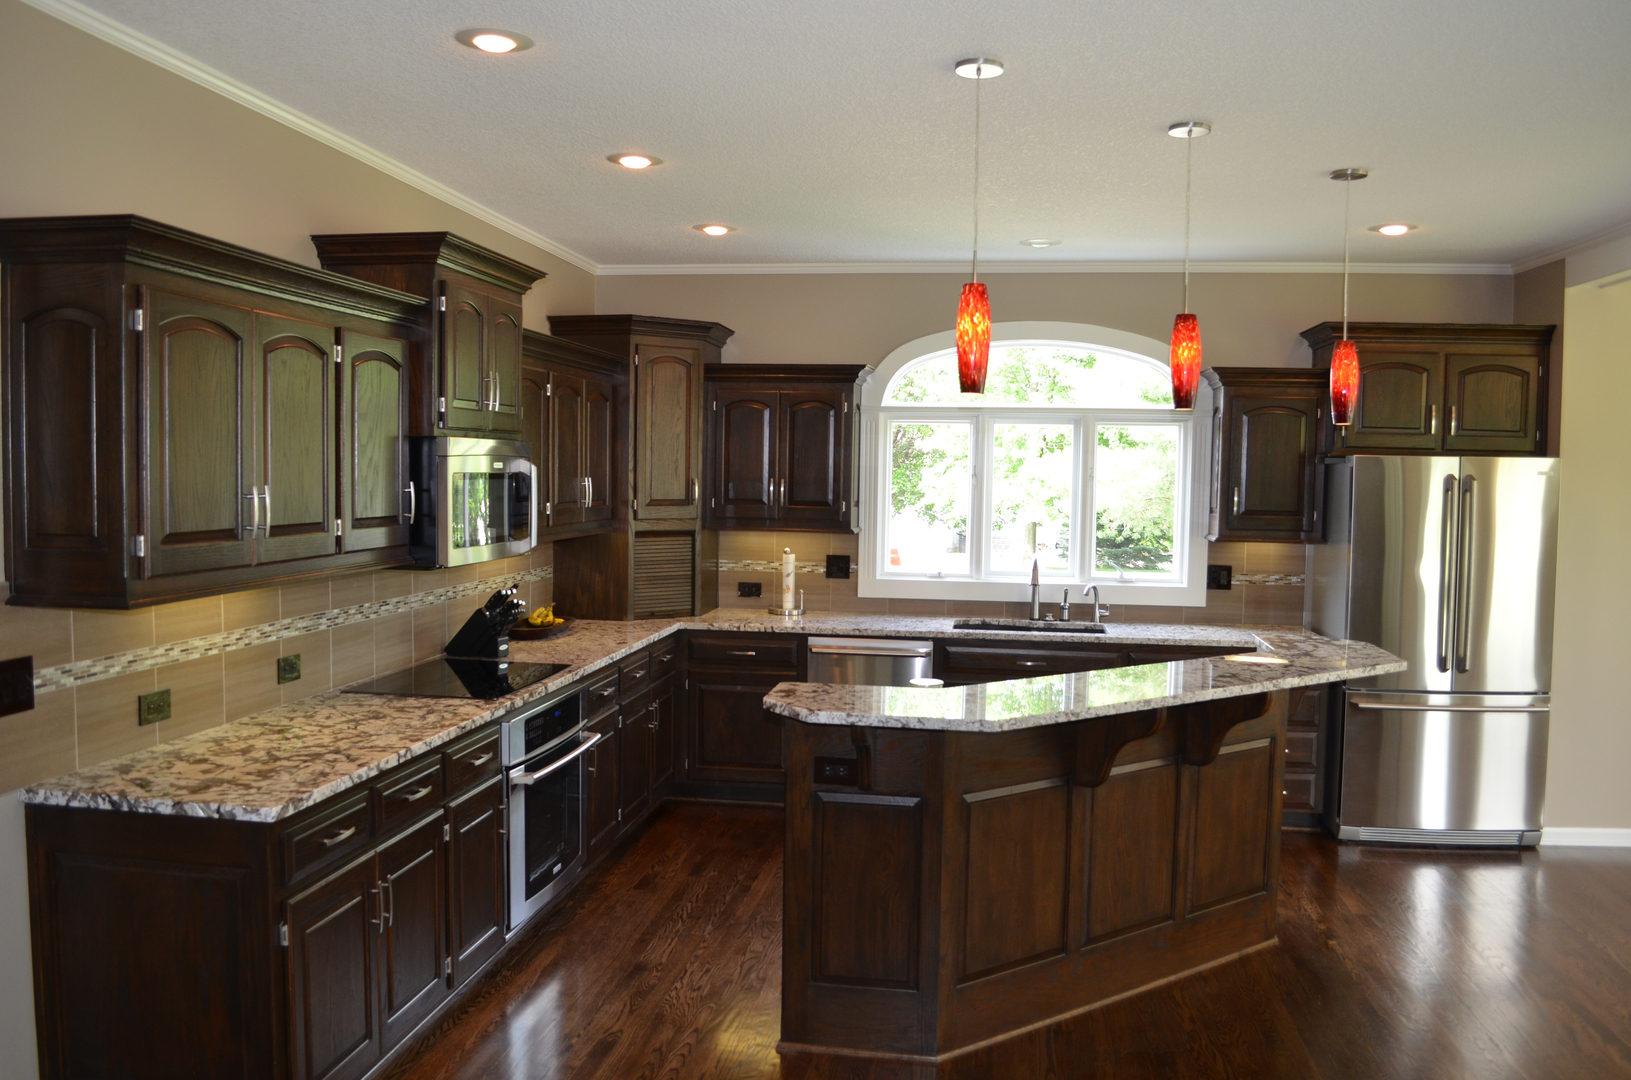 kitchens kitchen remodels Get Inspired